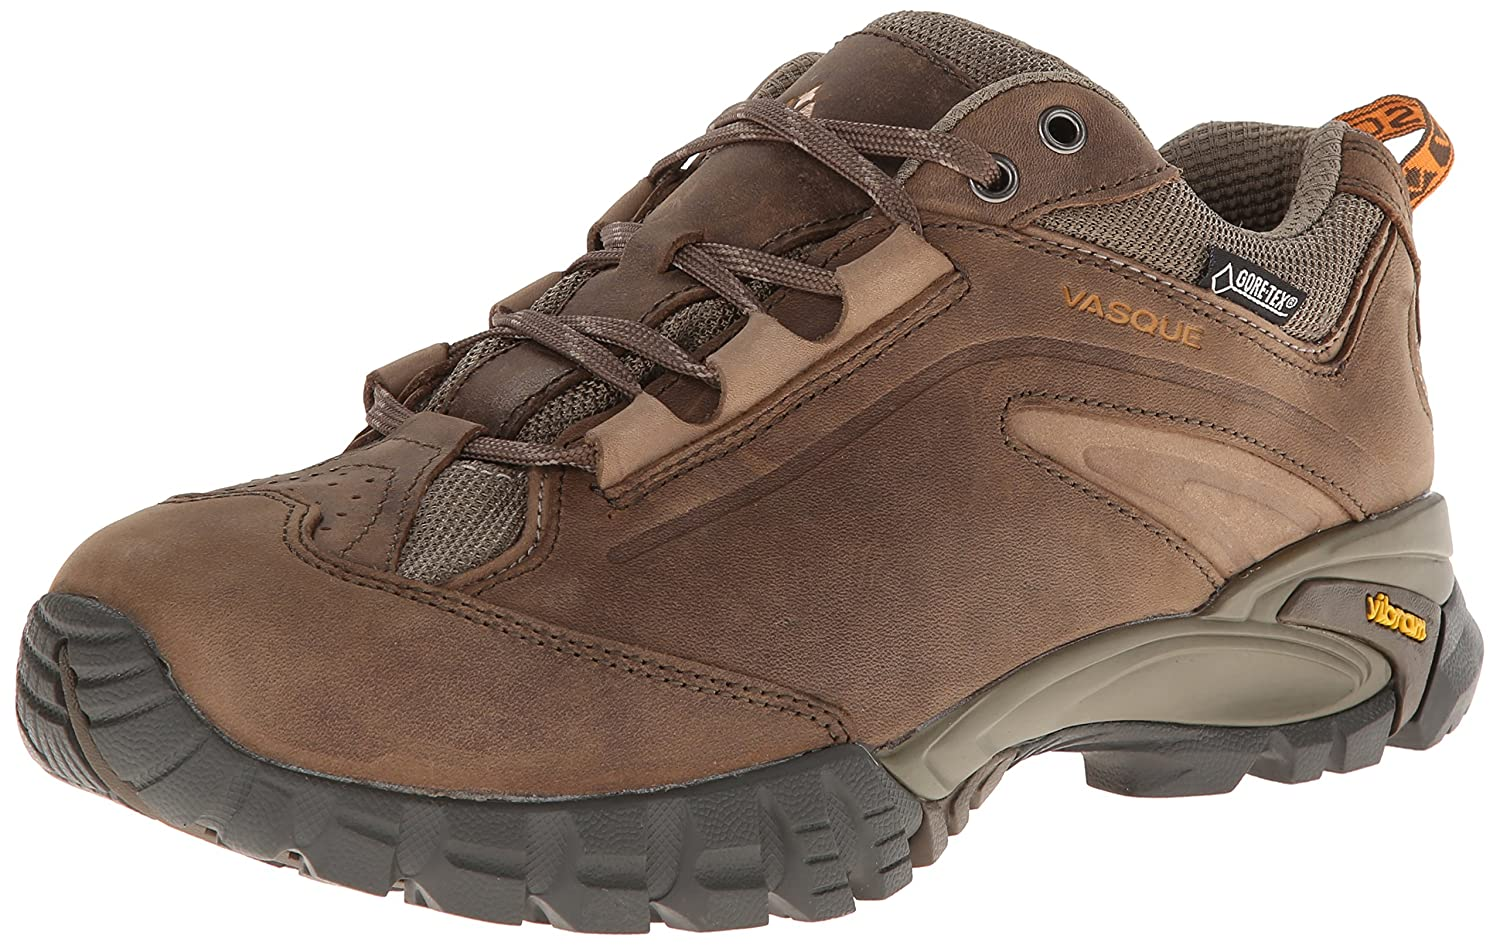 Vasque B005EQAI98 Women's Mantra 2.0 Gore-Tex Hiking Shoe B005EQAI98 Vasque 11 B(M) US|Canteen/Orange Peel 401c30